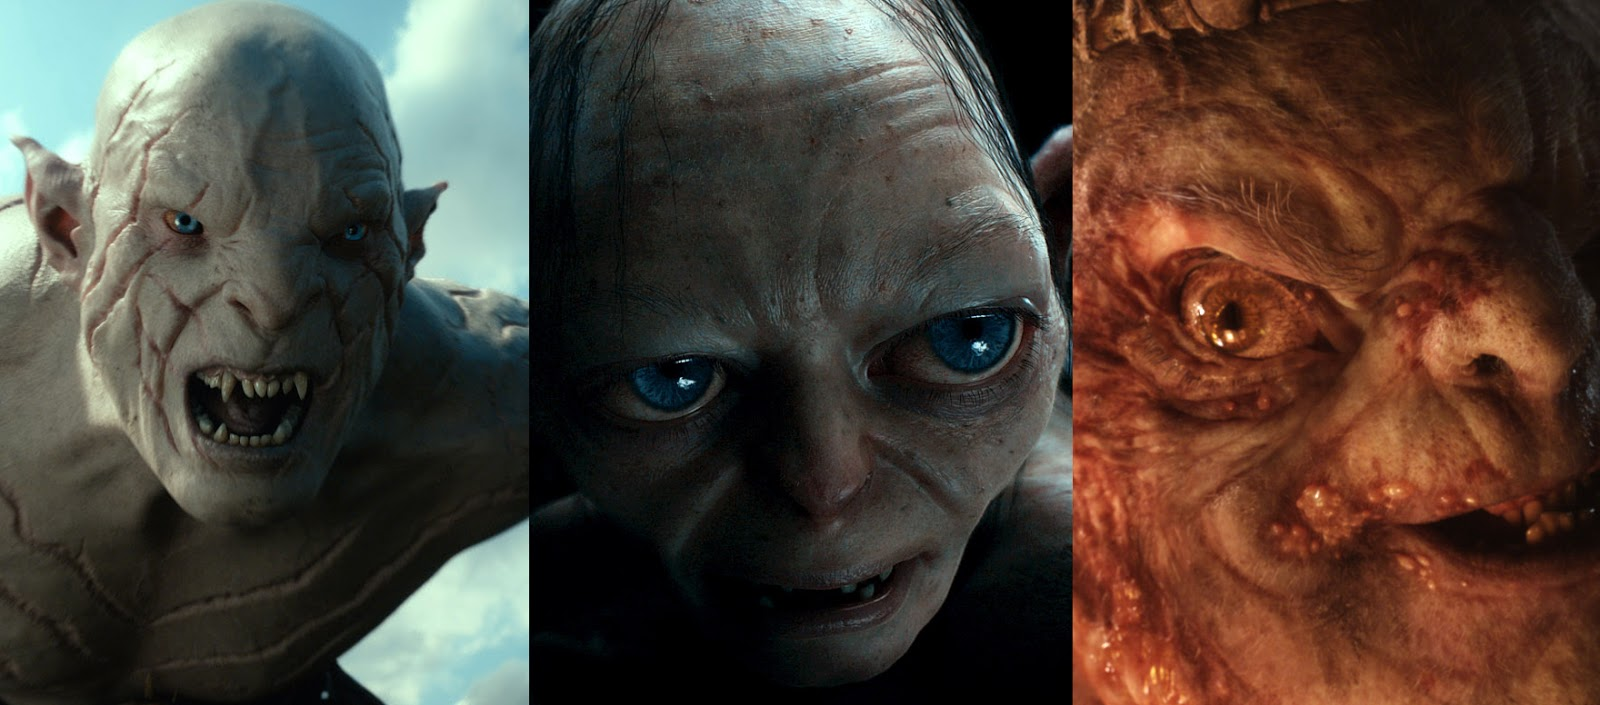 The Hobbit Vs Lord Of The Rings Difference